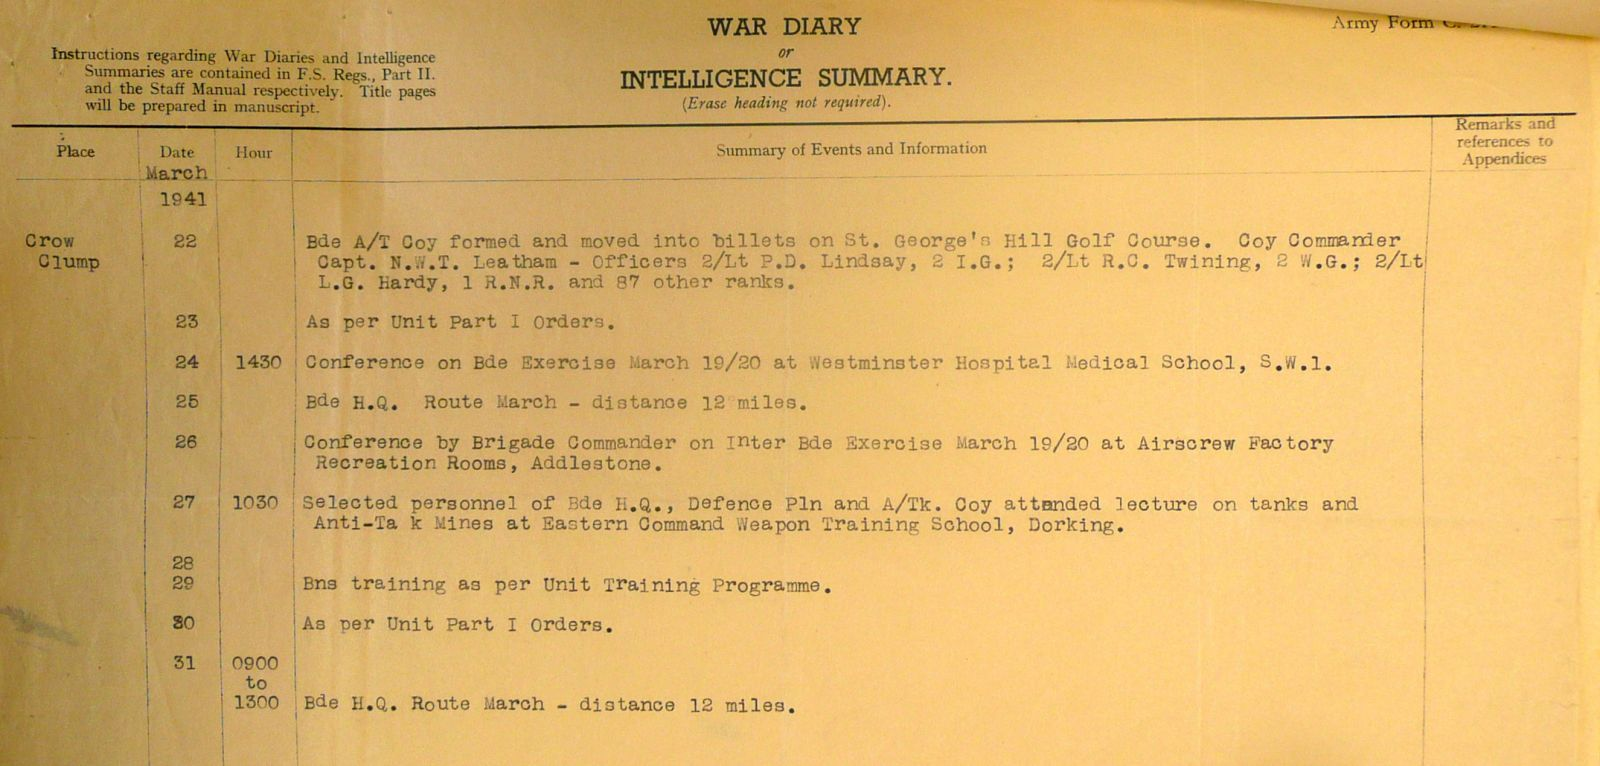 March 1941 War Diary, 20 Guards Brigade, Headquarters